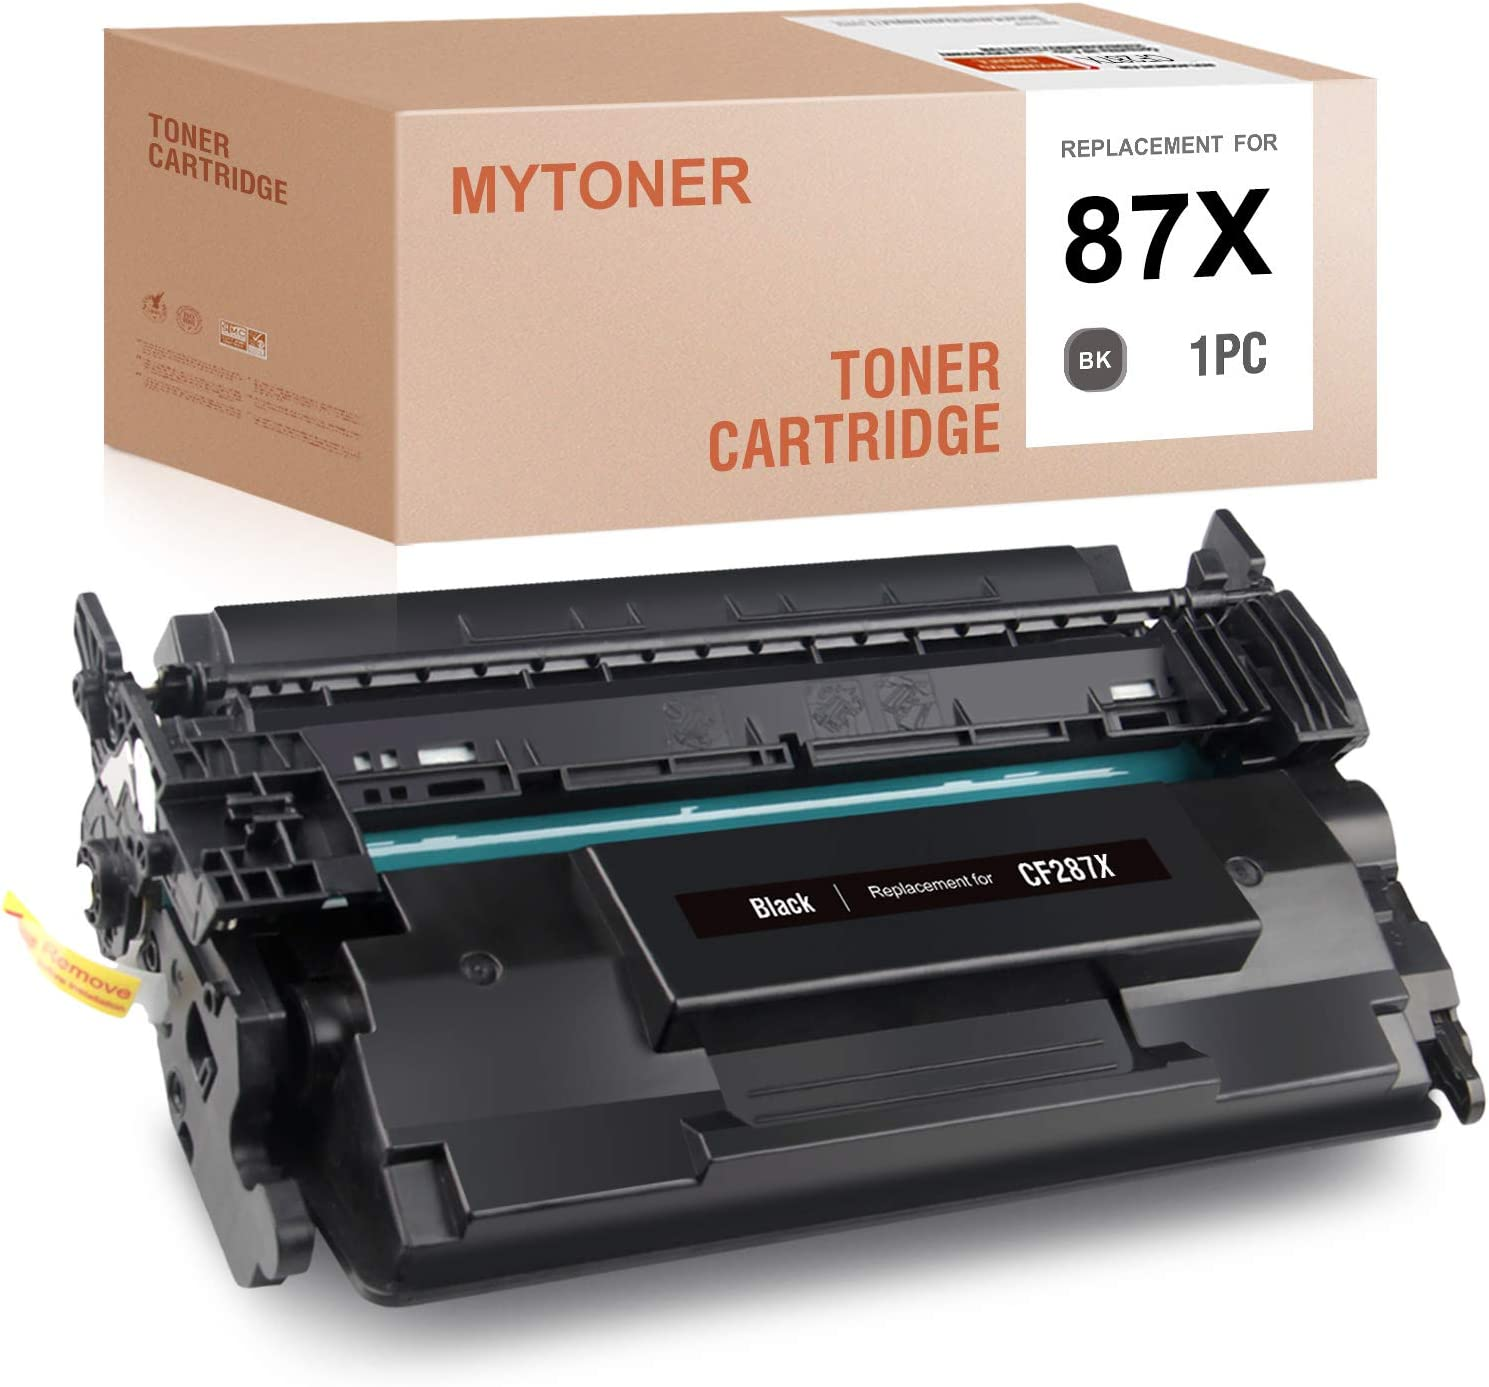 MYTONER Compatible Toner Cartridge Replacement for HP 87X CF287X 87A CF287A High Yield Toner for Laserjet Pro M501 M506 M527 (Black, 1-Pack)